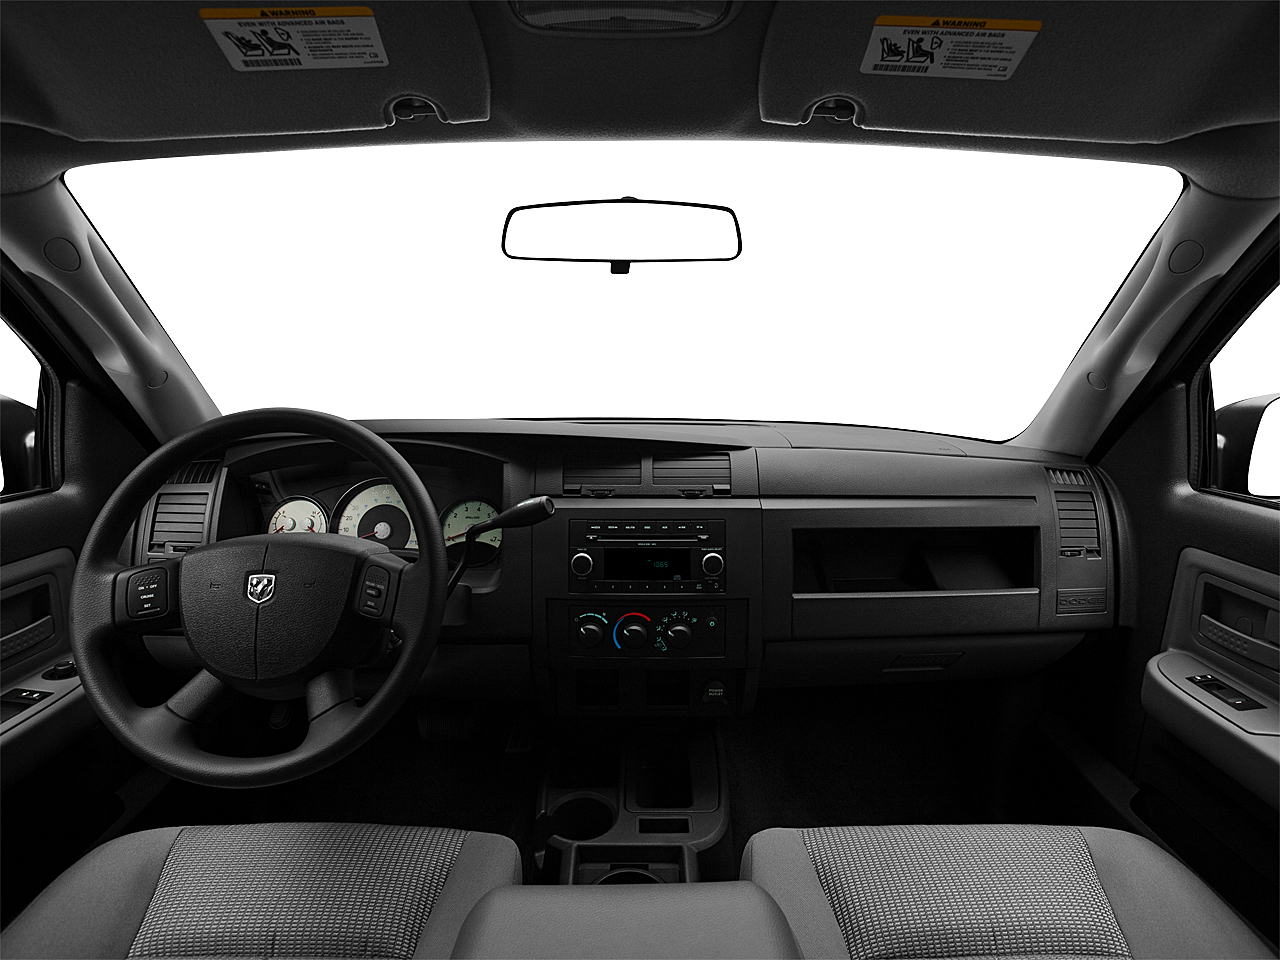 2011 Ram Trucks Dakota Big Horn, centered wide dash shot